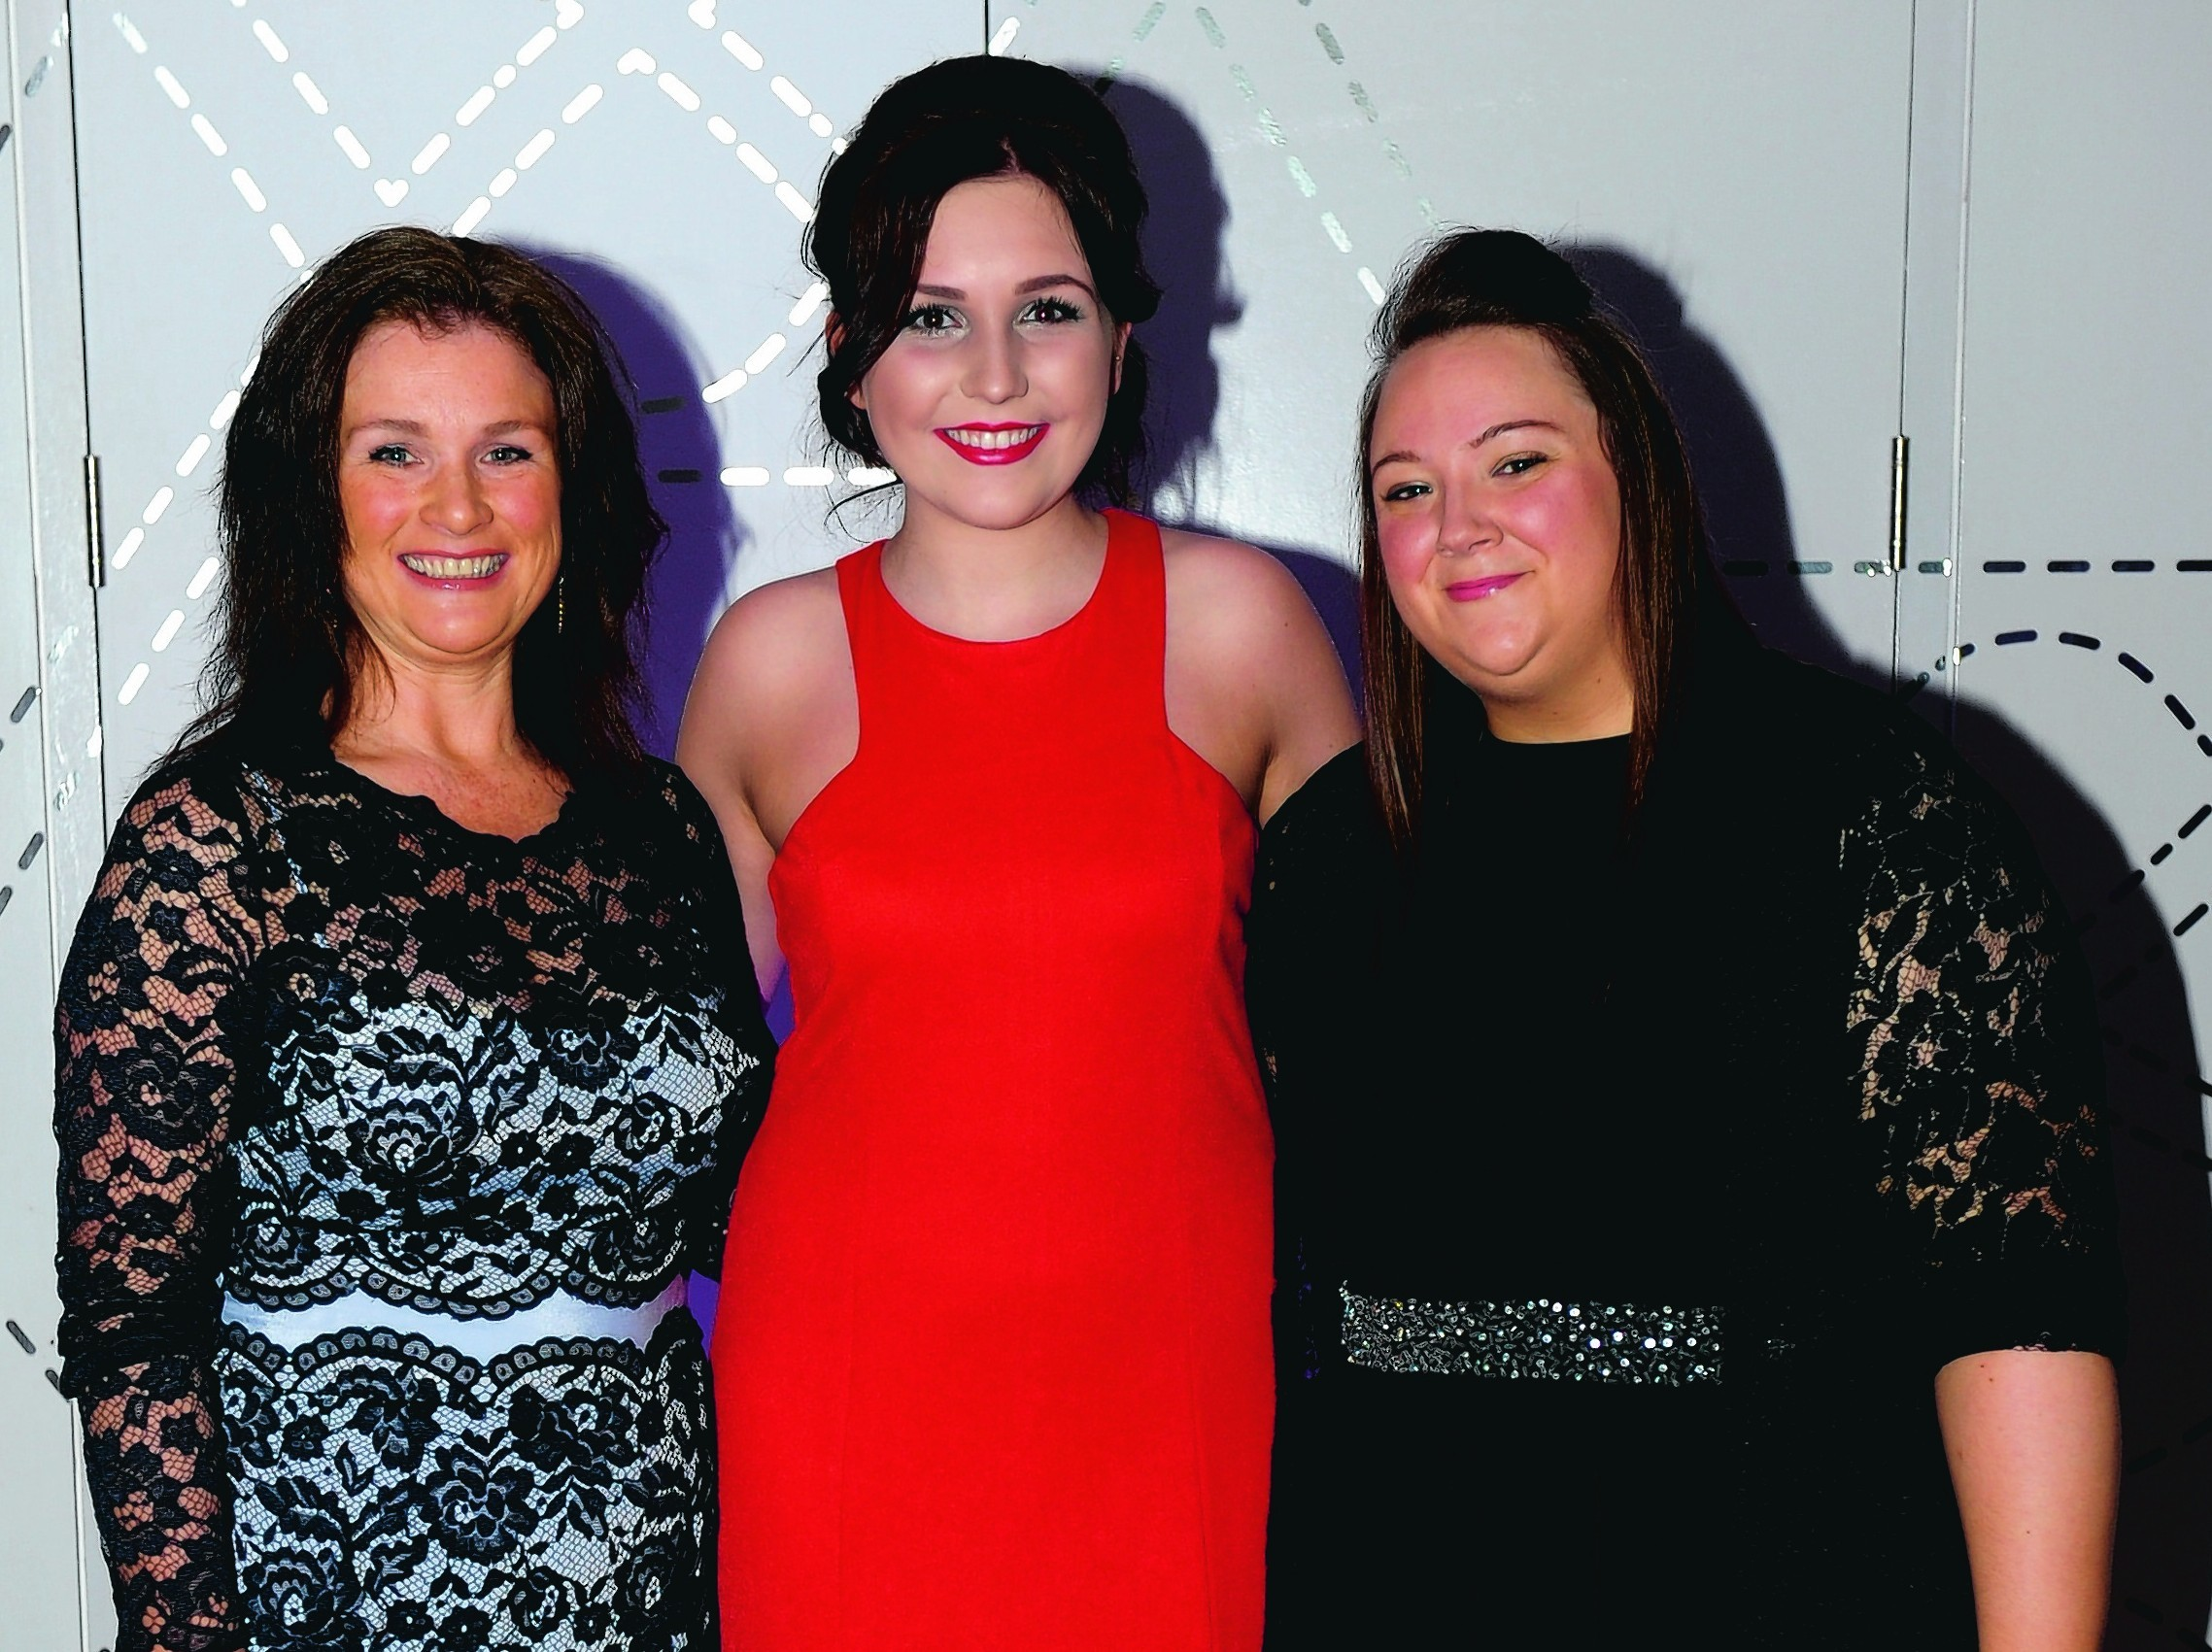 Ruth Wright, Laura Allan and Karen Howie.